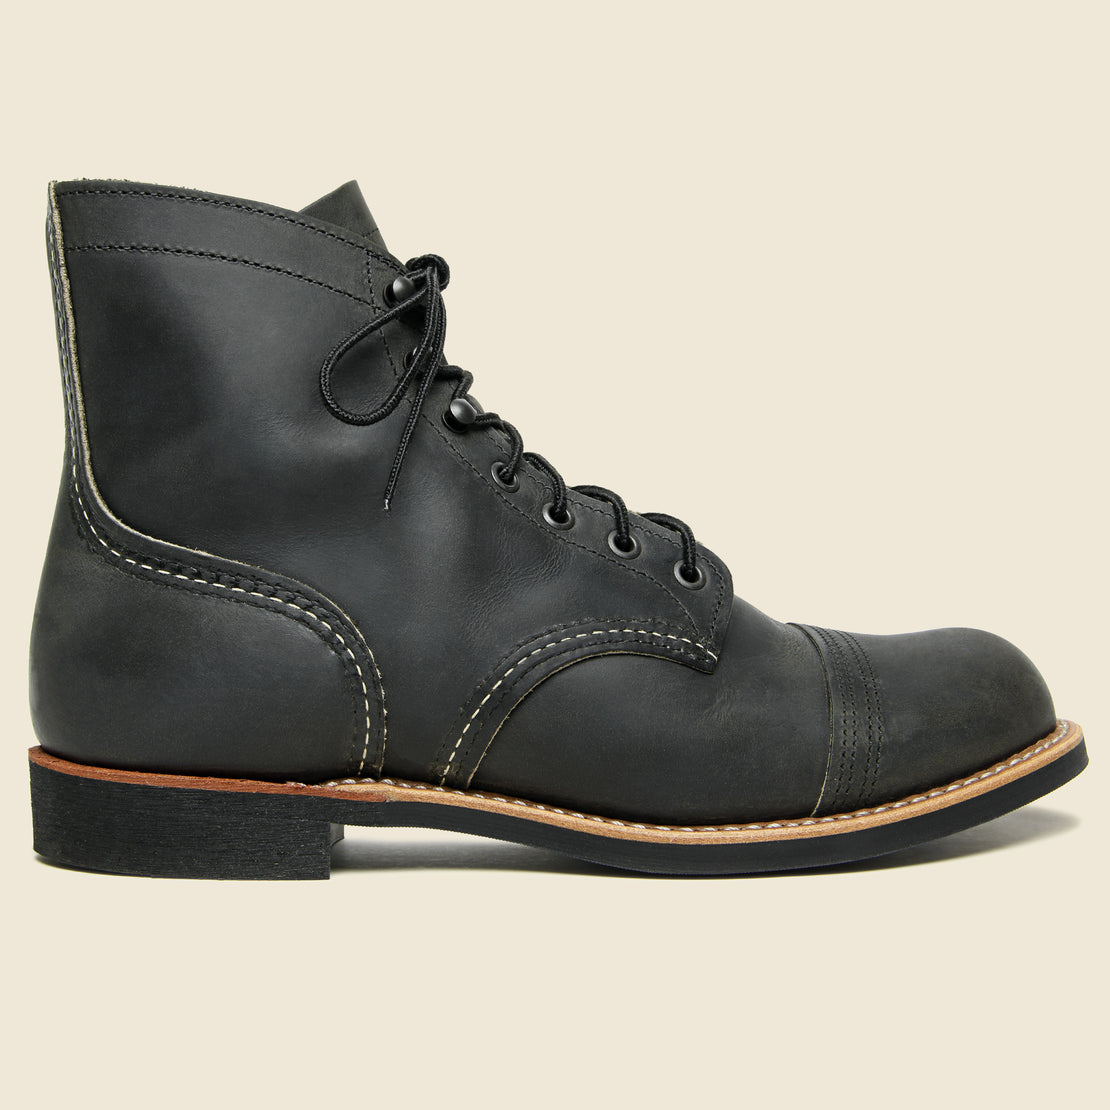 Red Wing Iron Ranger No. 8086 - Charcoal Rough & Tough - Mini-Lug Sole